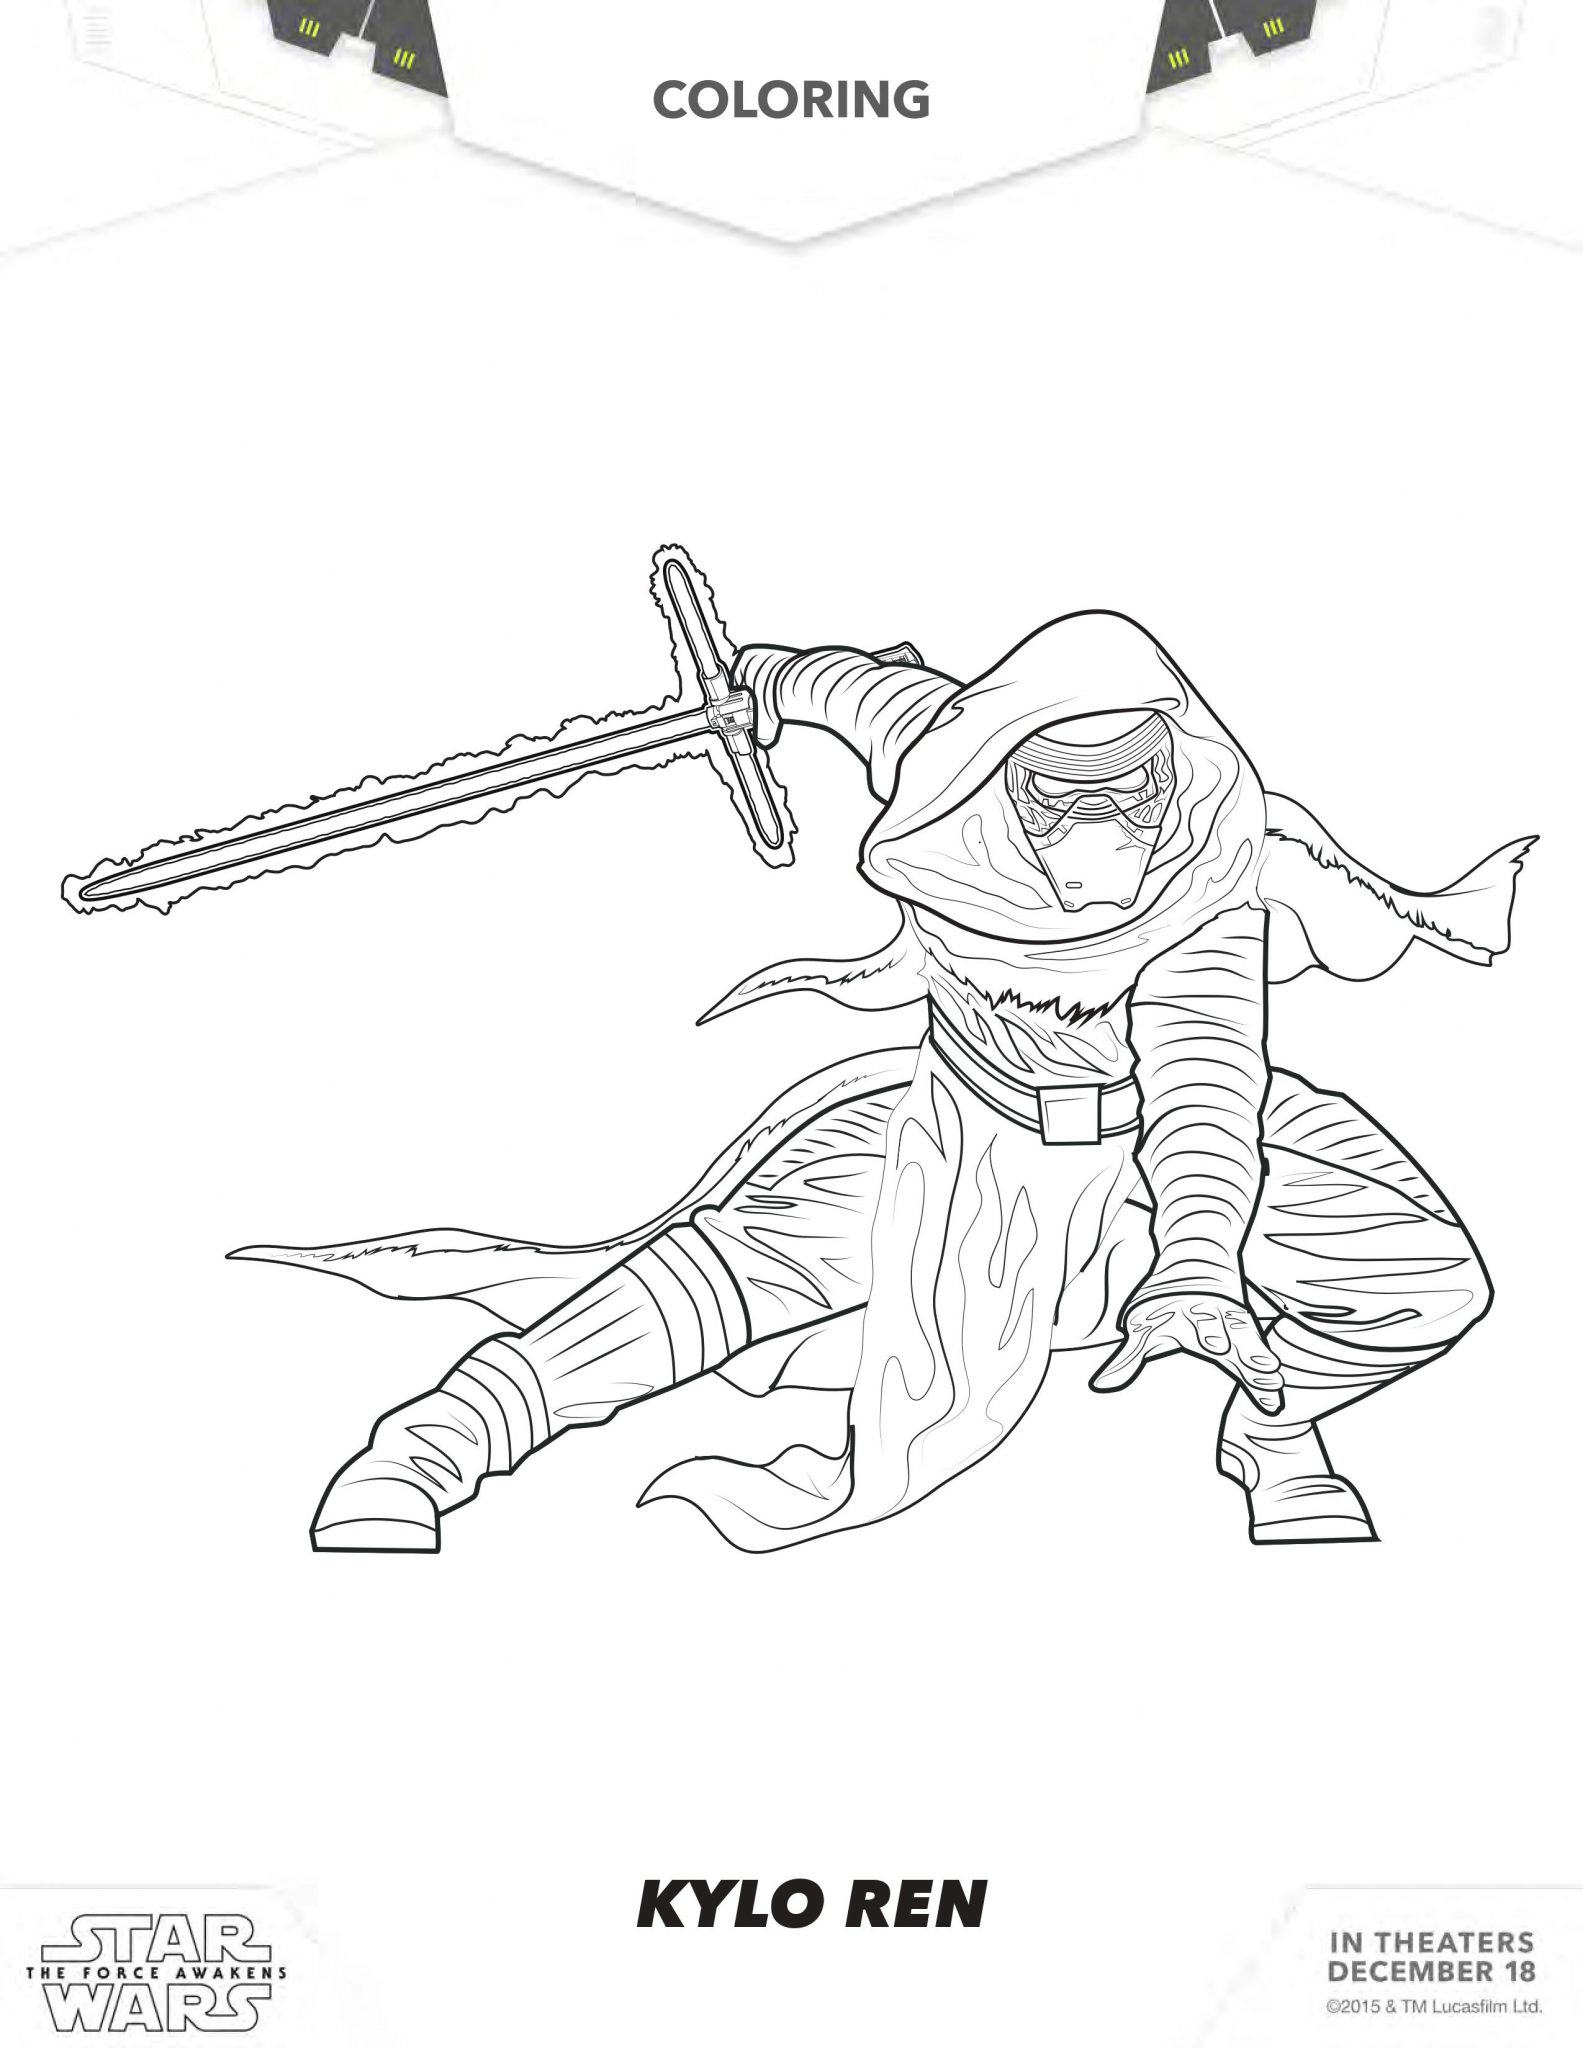 Kylo Ren Coloring Pages - Best Coloring Pages For Kids | 2048x1583